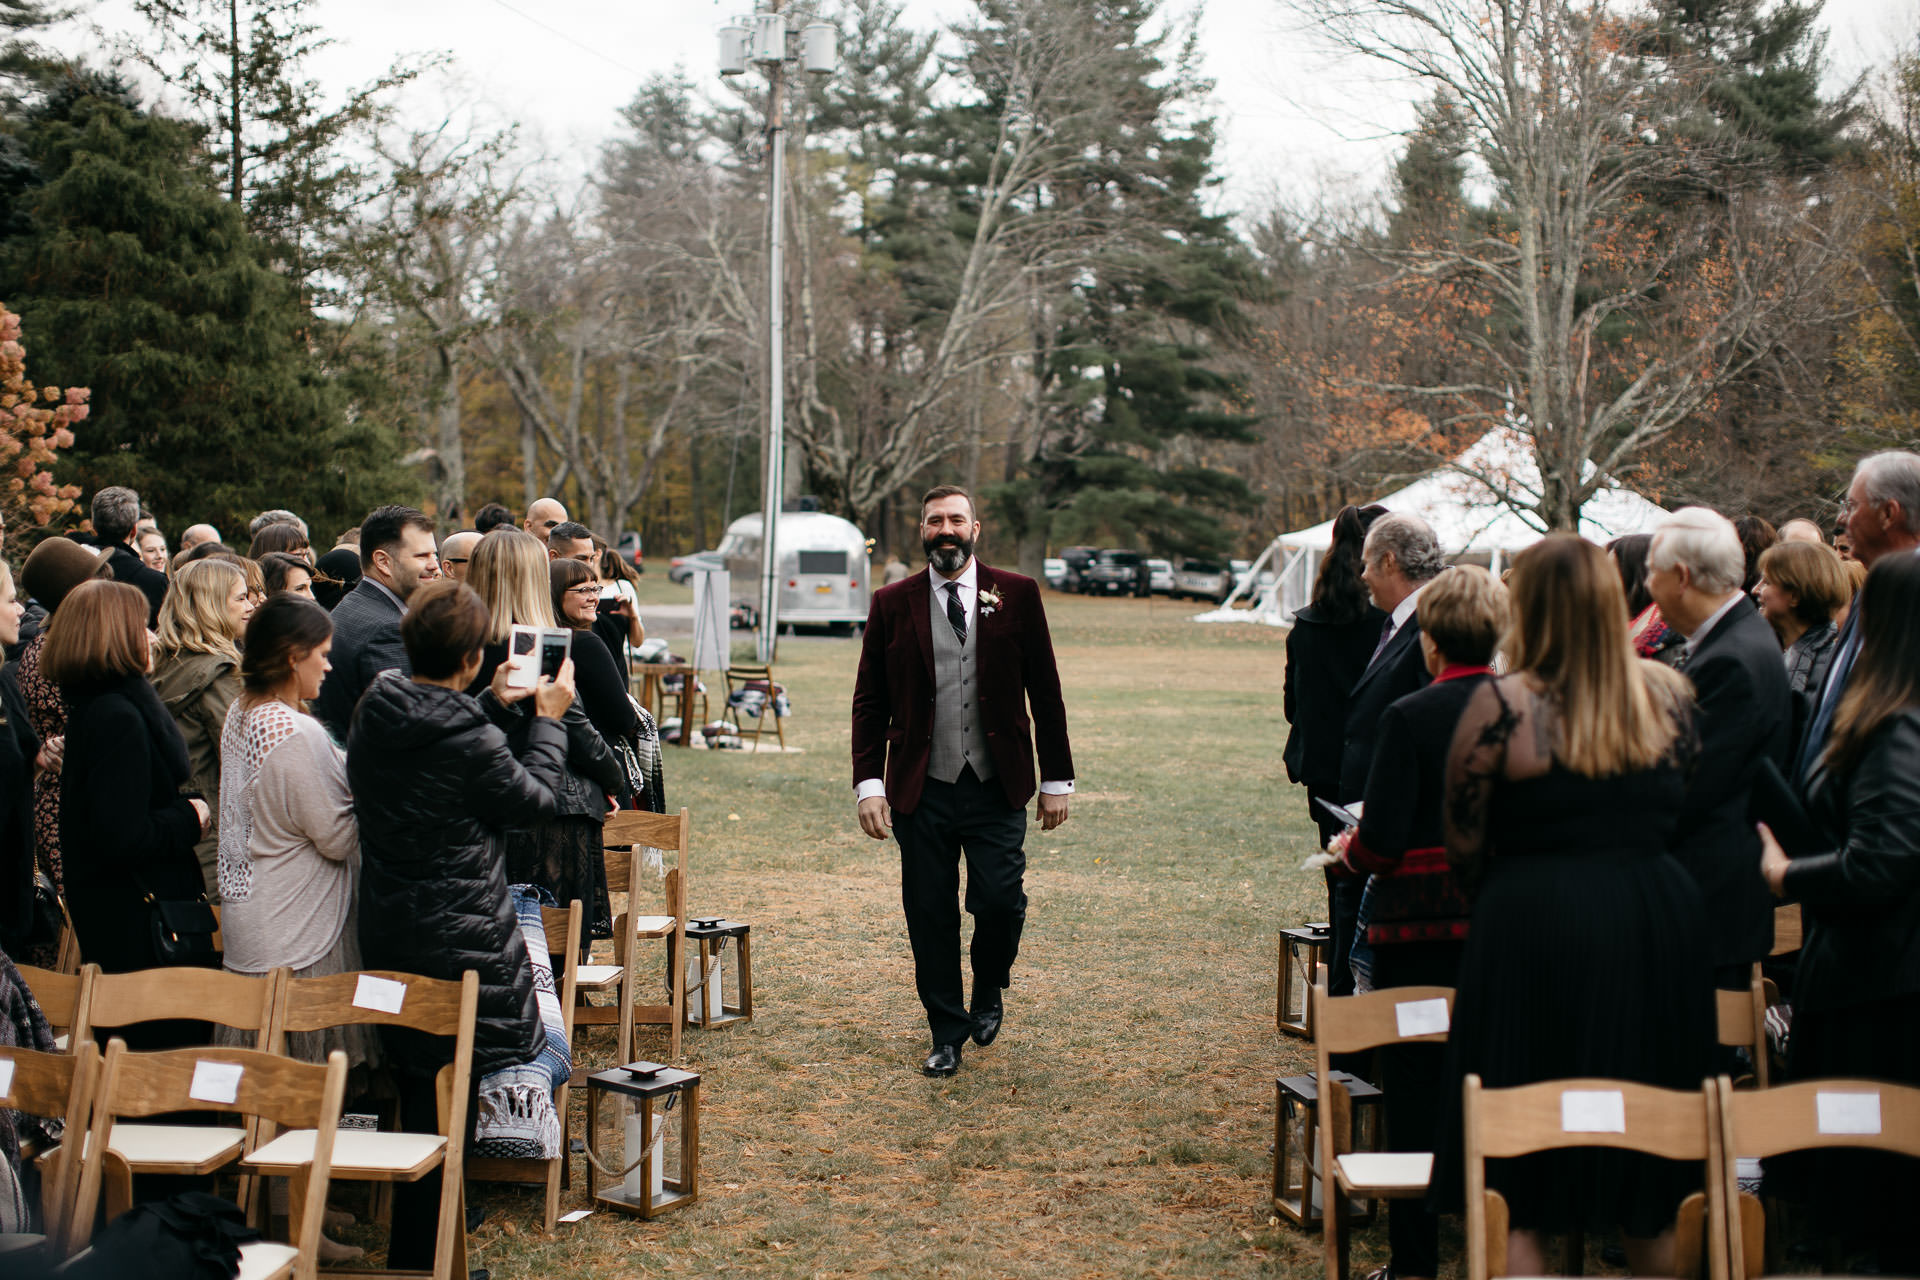 Robyn & Jim Catskills Fall Wedding at Foxfire Mountain House by Jean-Laurent Gaudy Photography